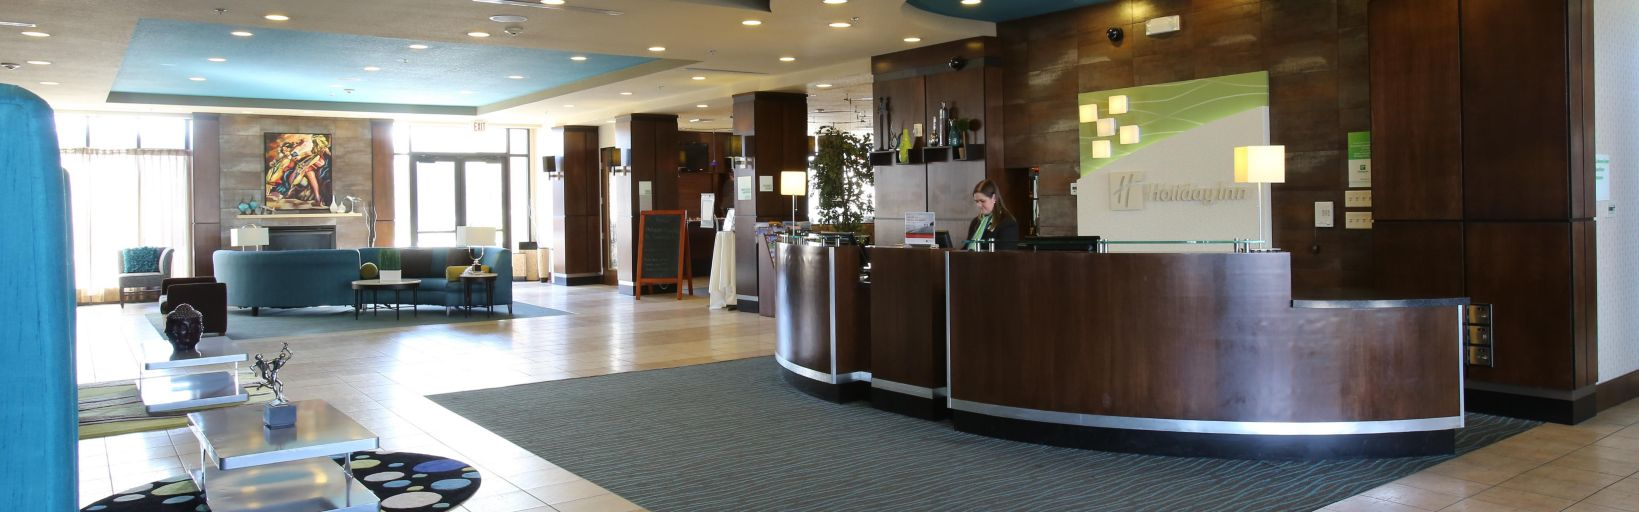 Welcome To The Holiday Inn Suites Salt Lake City Airport